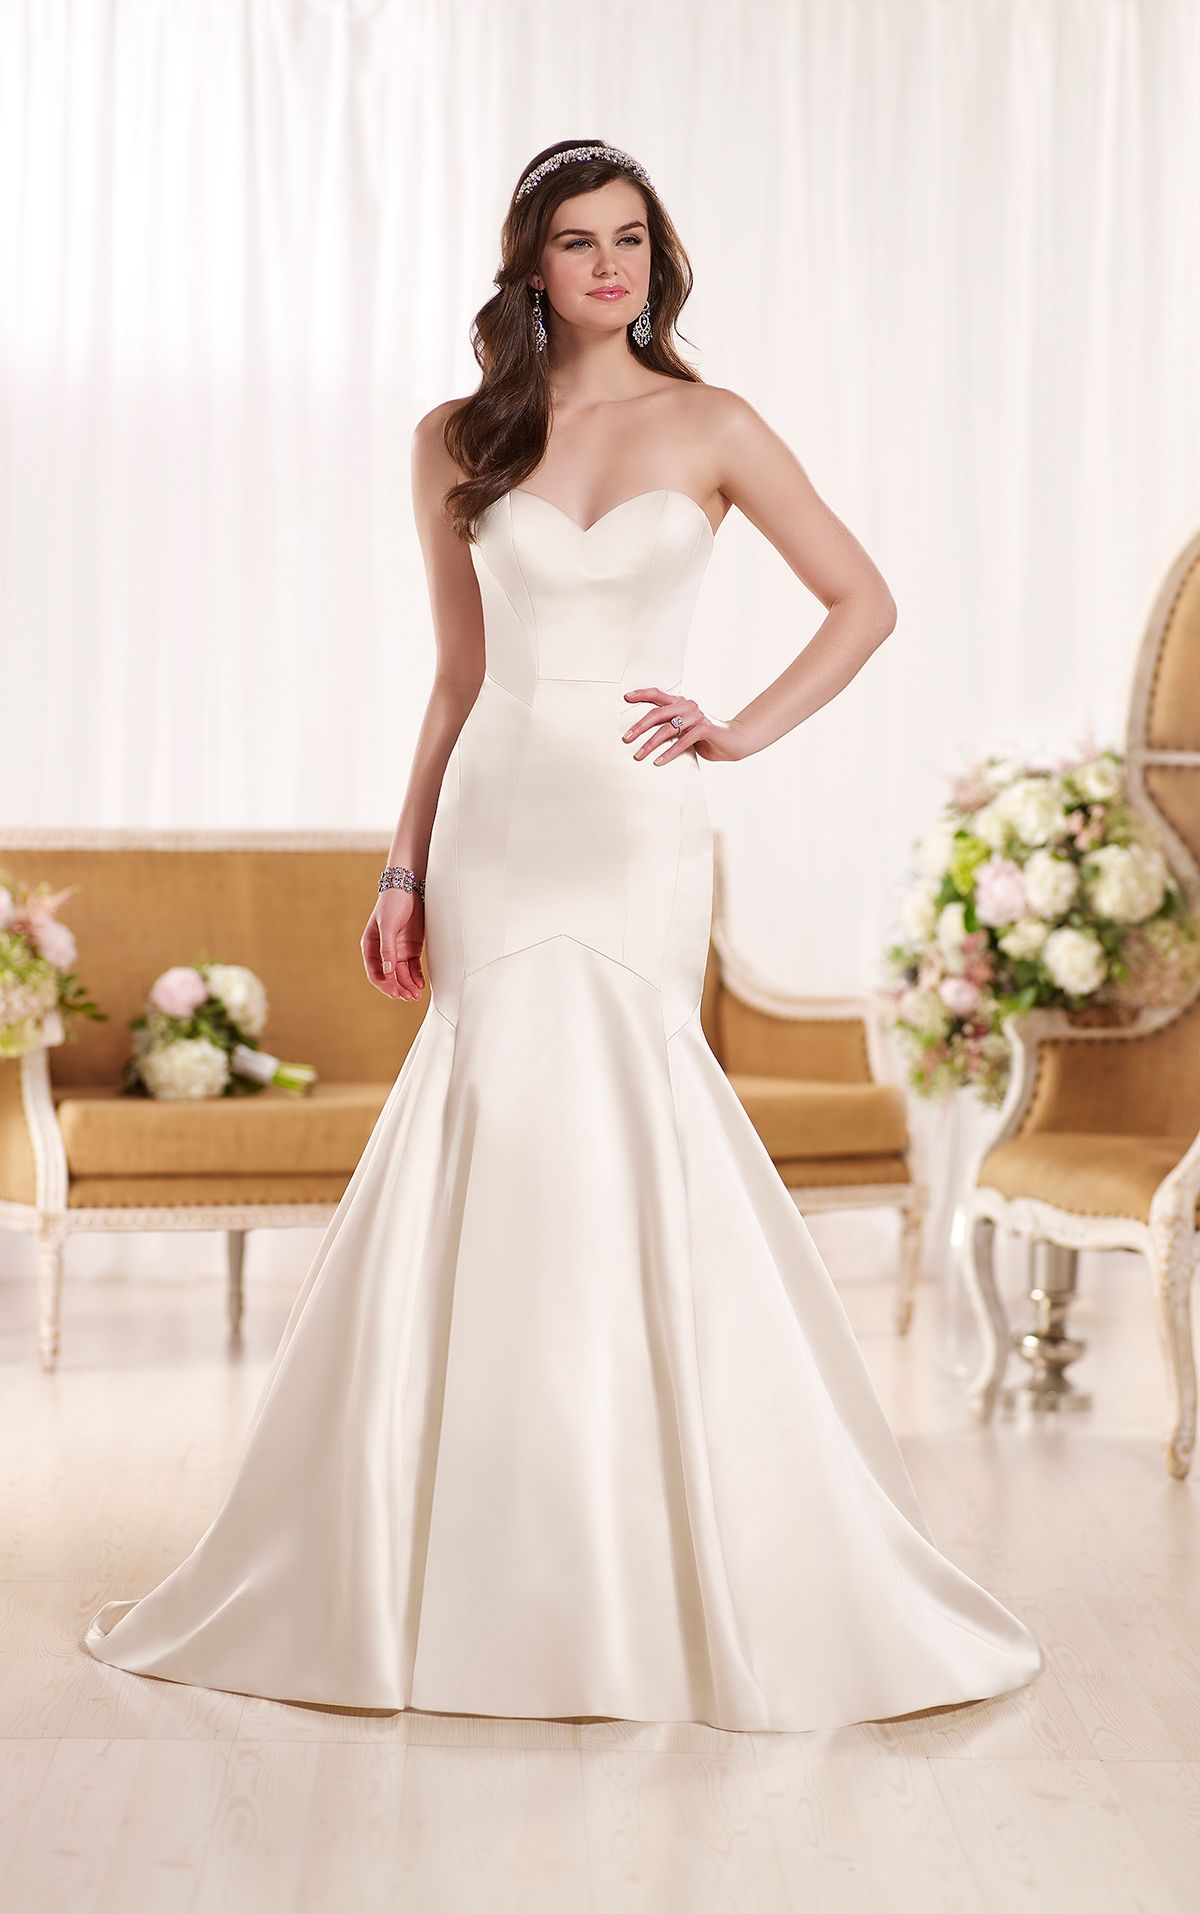 Mermaid Wedding Dress by | Dress collection, Bridal gowns and ...